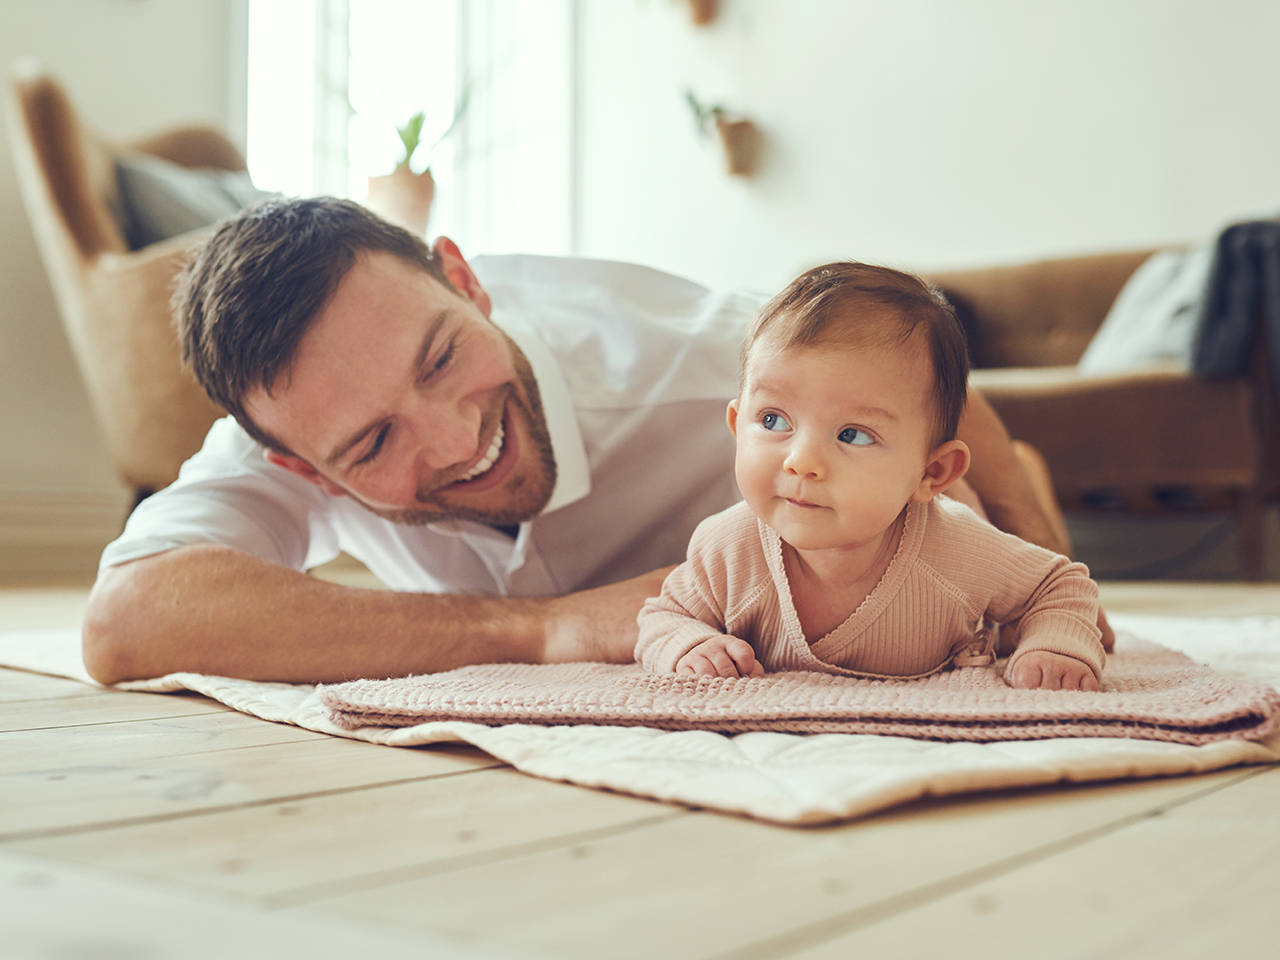 A dad smiling at his daughter who is doing tummy time